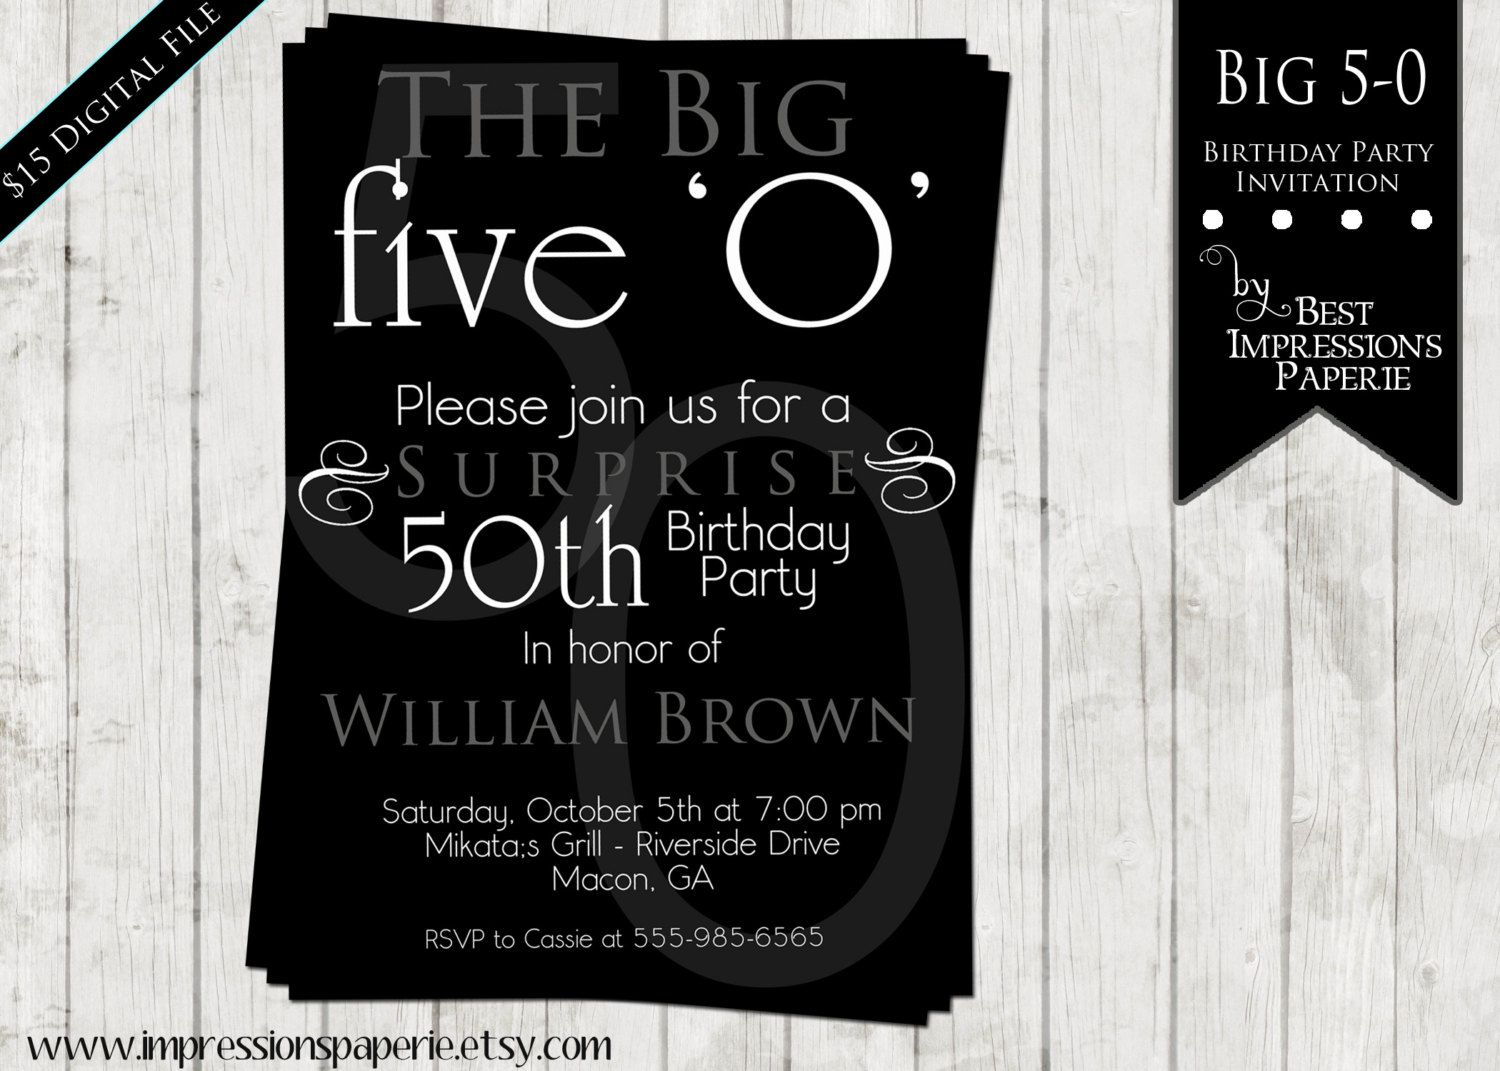 Ideas for 50th birthday invitations dolanpedia invitations ideas ideas for 50th birthday invitations dolanpedia invitations ideas filmwisefo